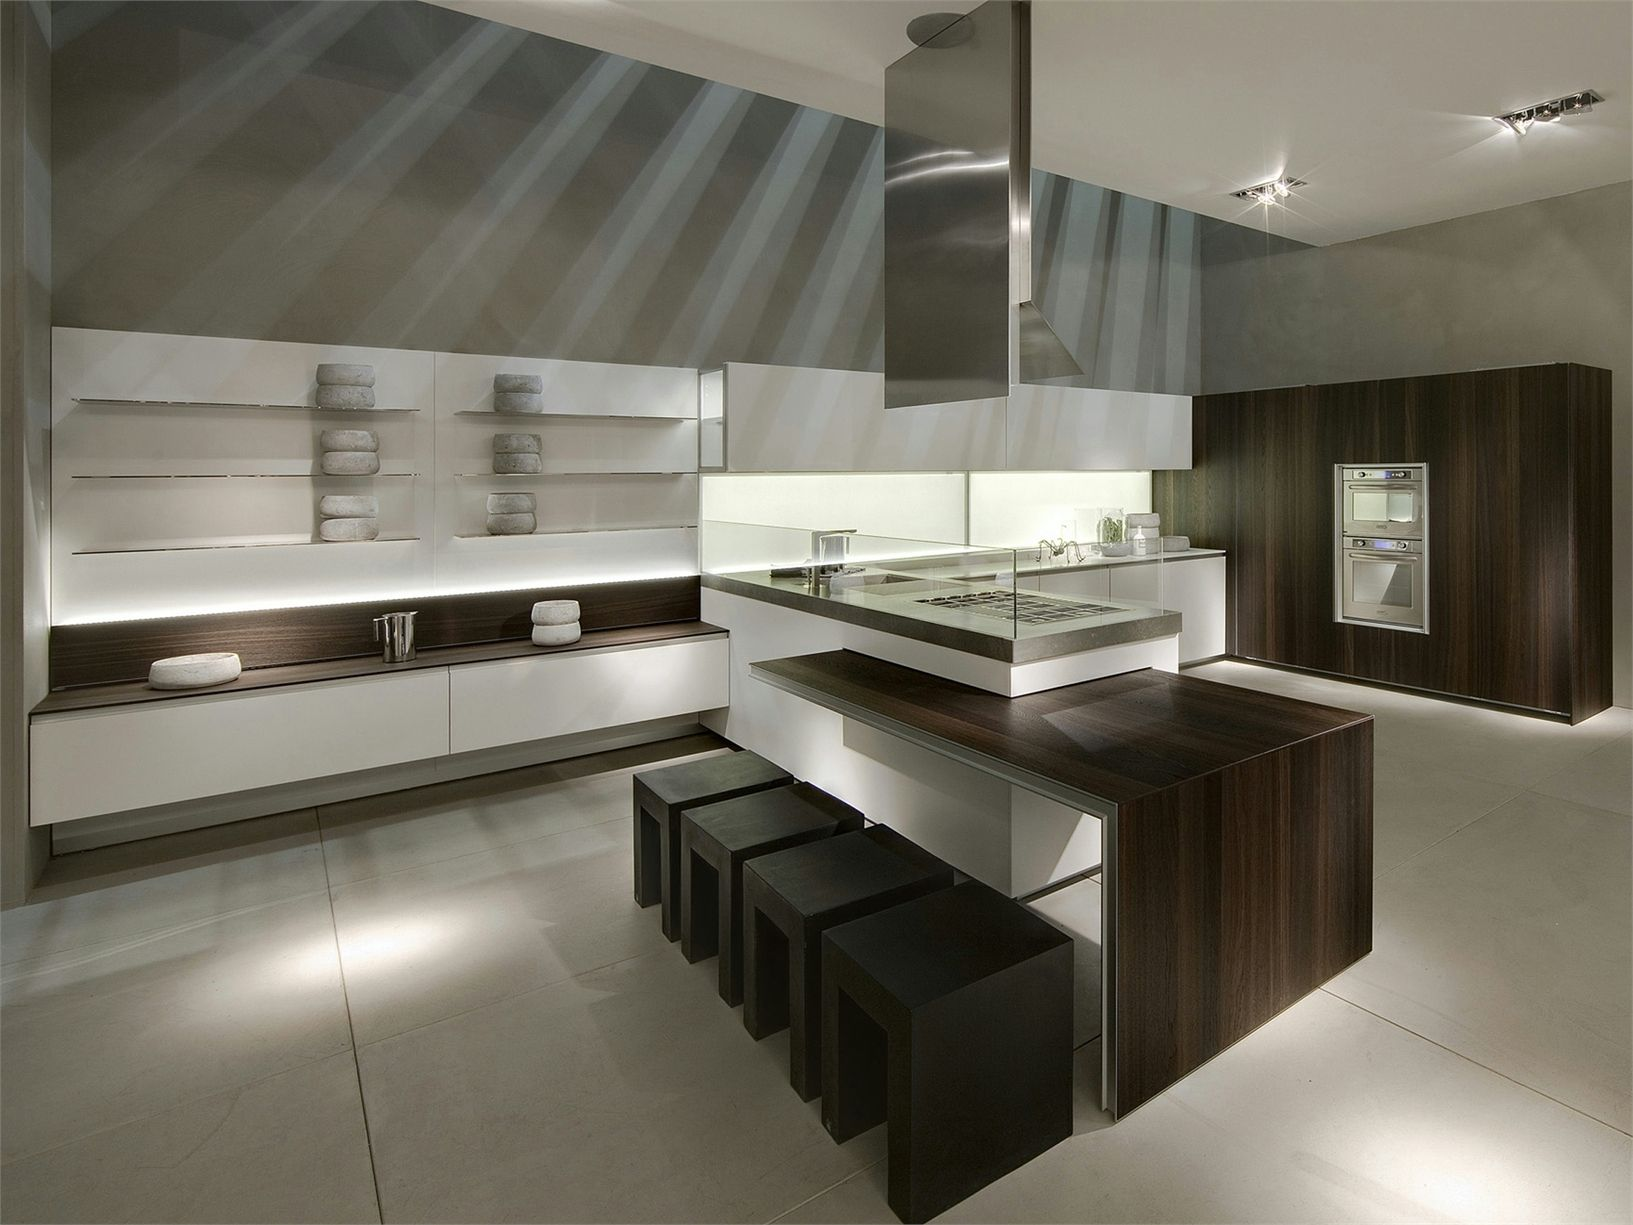 ICON BY ERNESTOMEDA A LIVING KITCHEN 2013